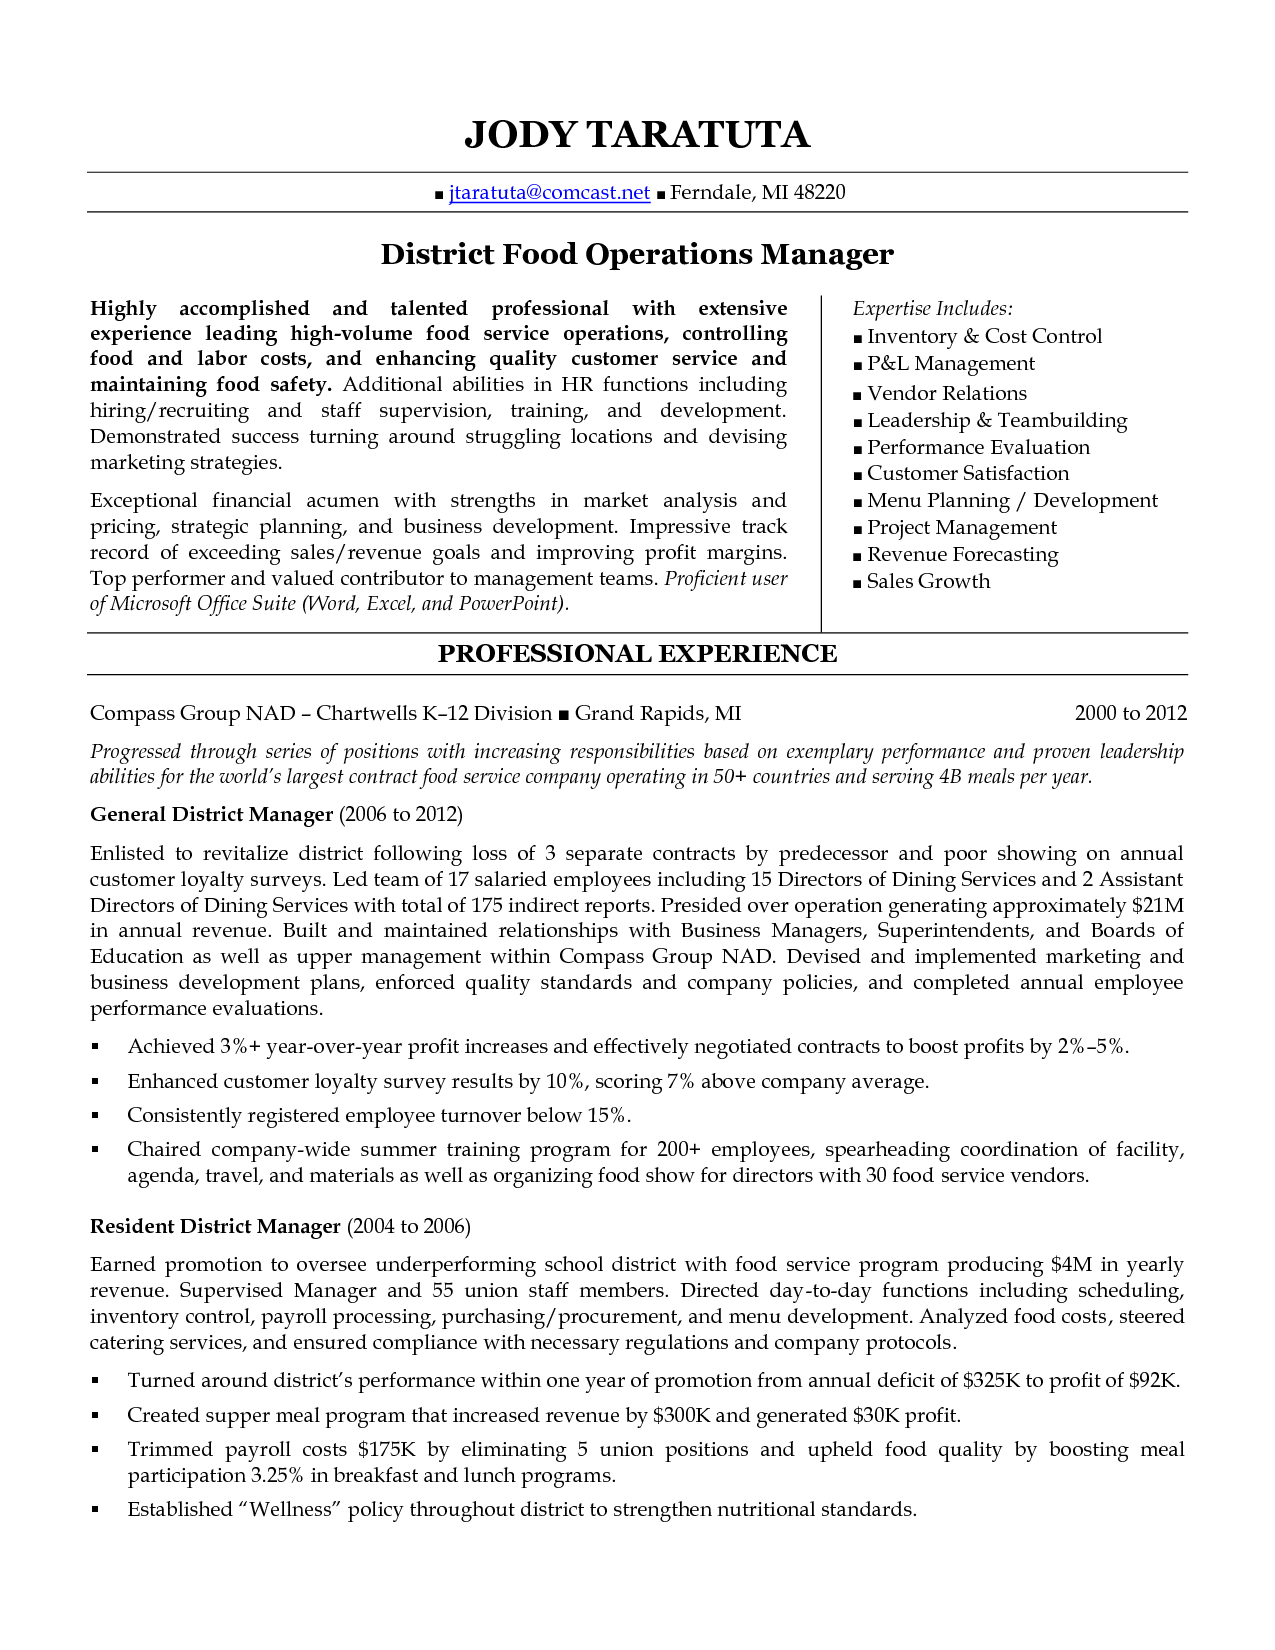 Operation Manager Resume District Manager Resume  District Food Operations Manager In